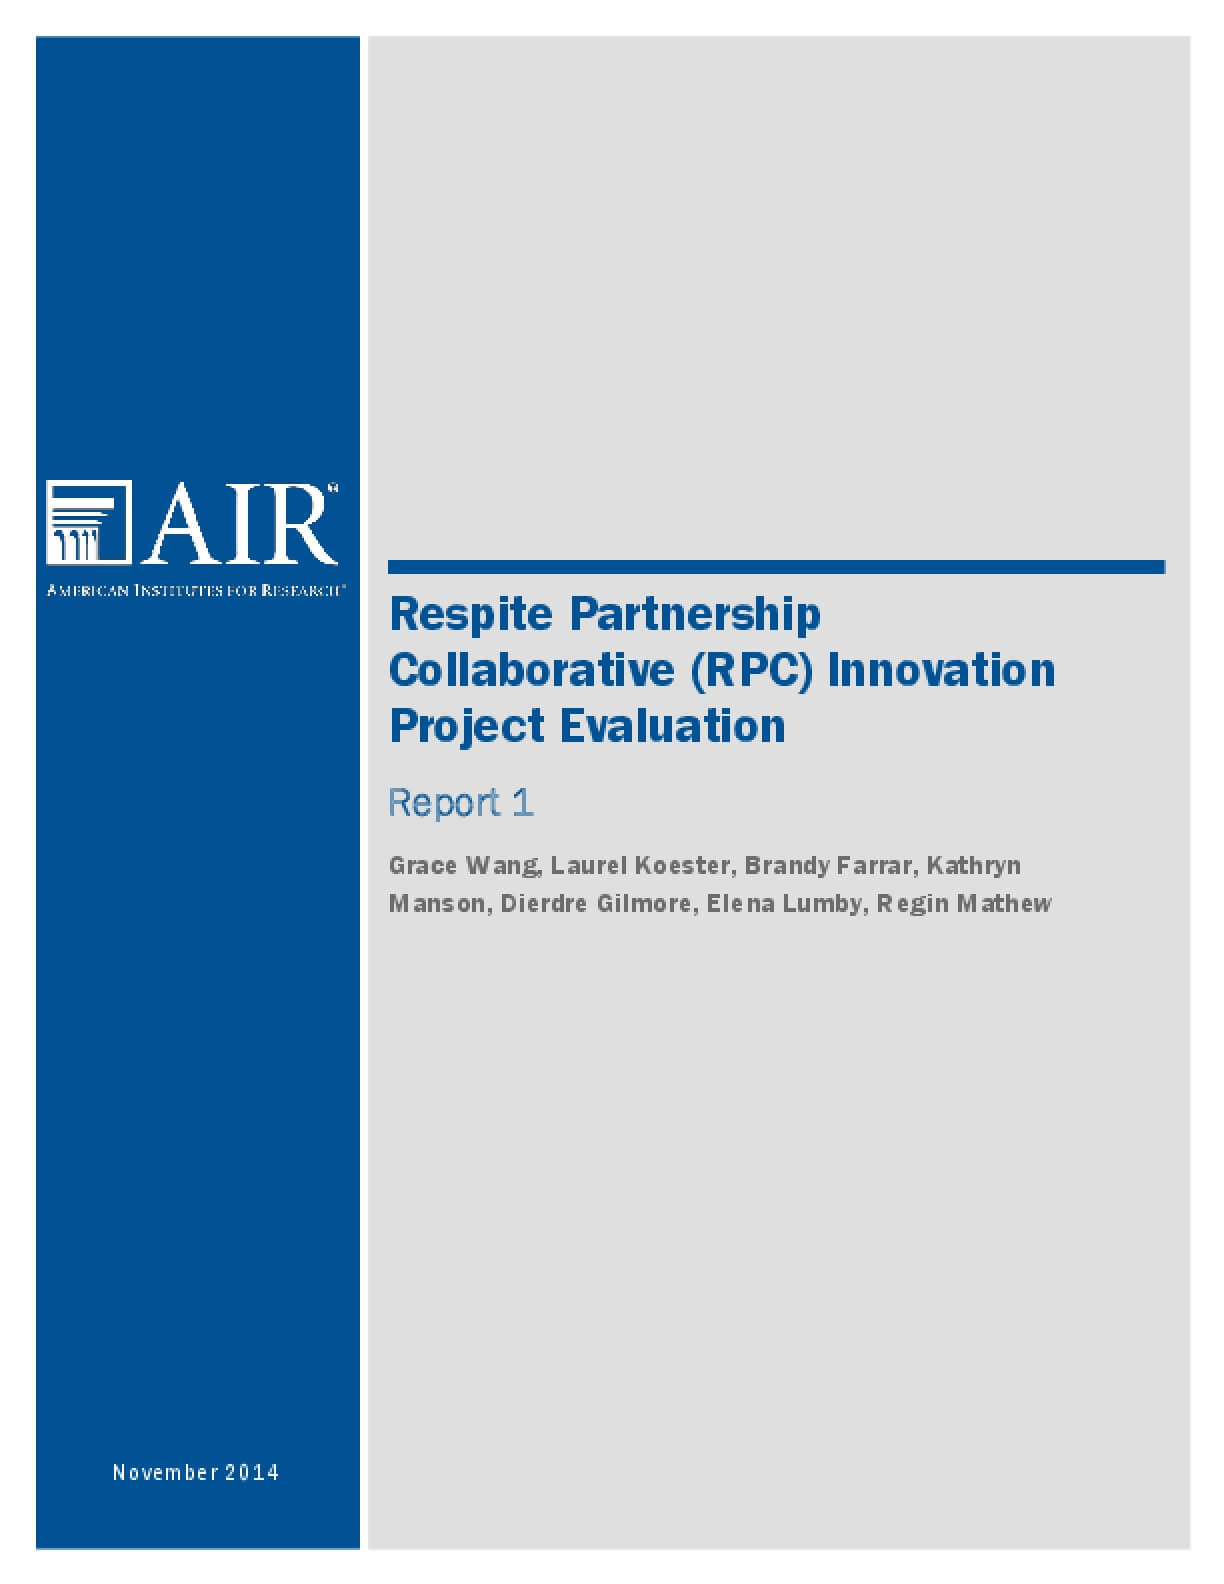 Respite Partnership Collaborative (RPC) Innovation Project Evaluation: Report 1